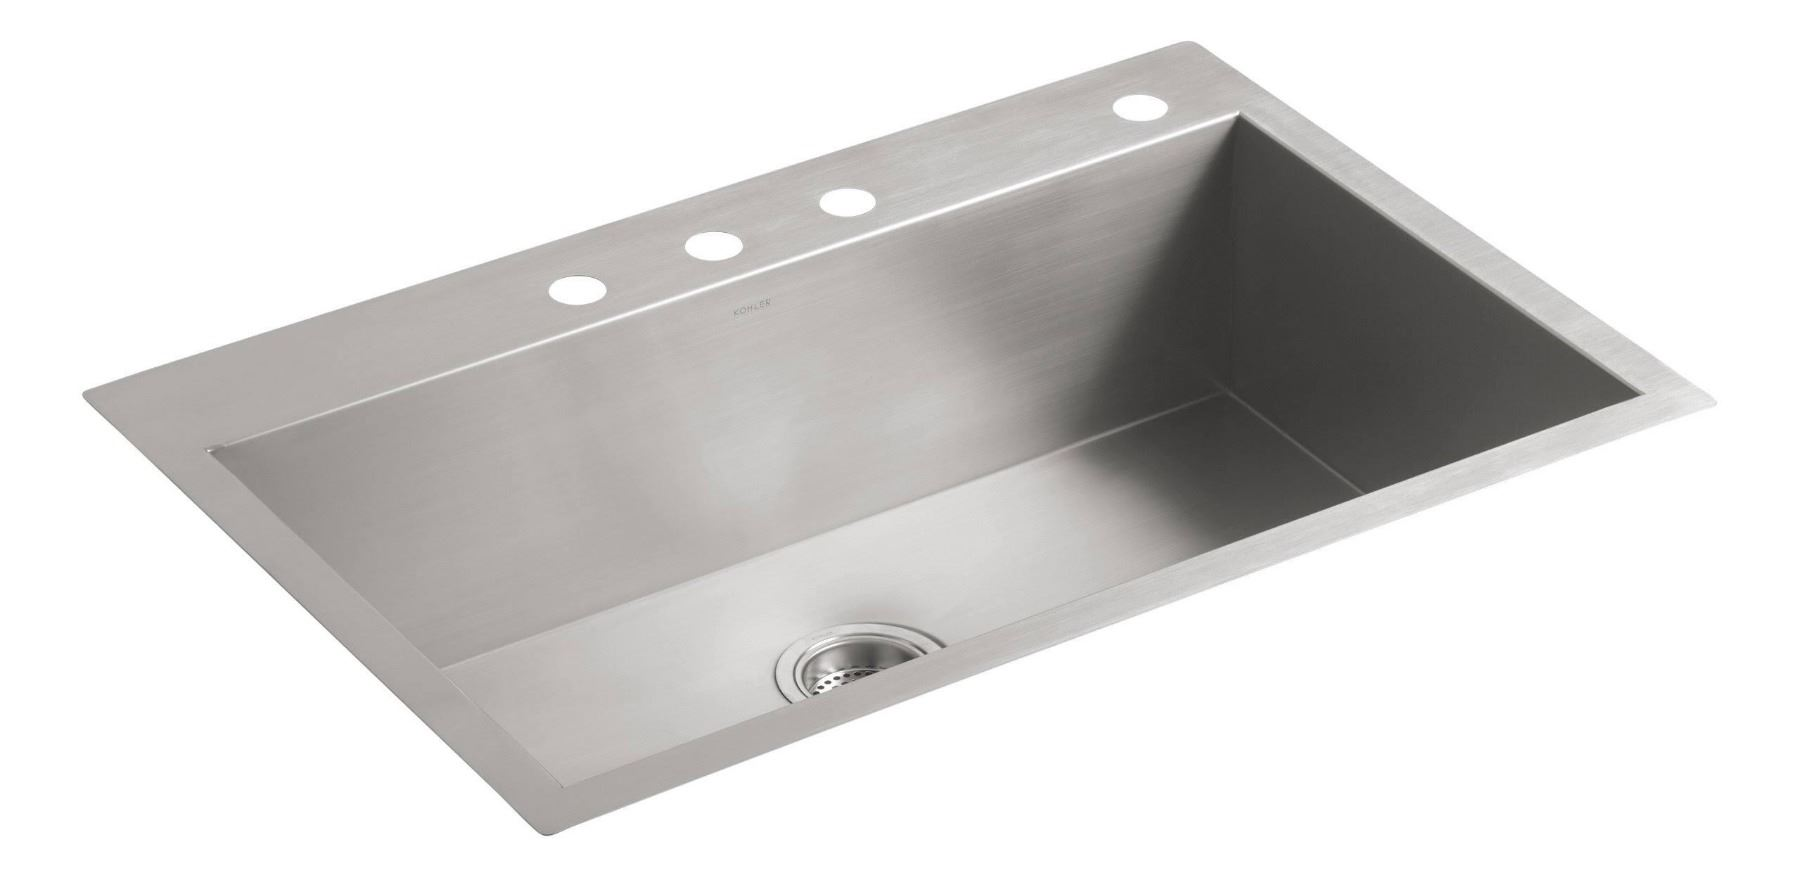 Kohler Vault 33 Single Bowl Stainless Steel Kitchen Sink